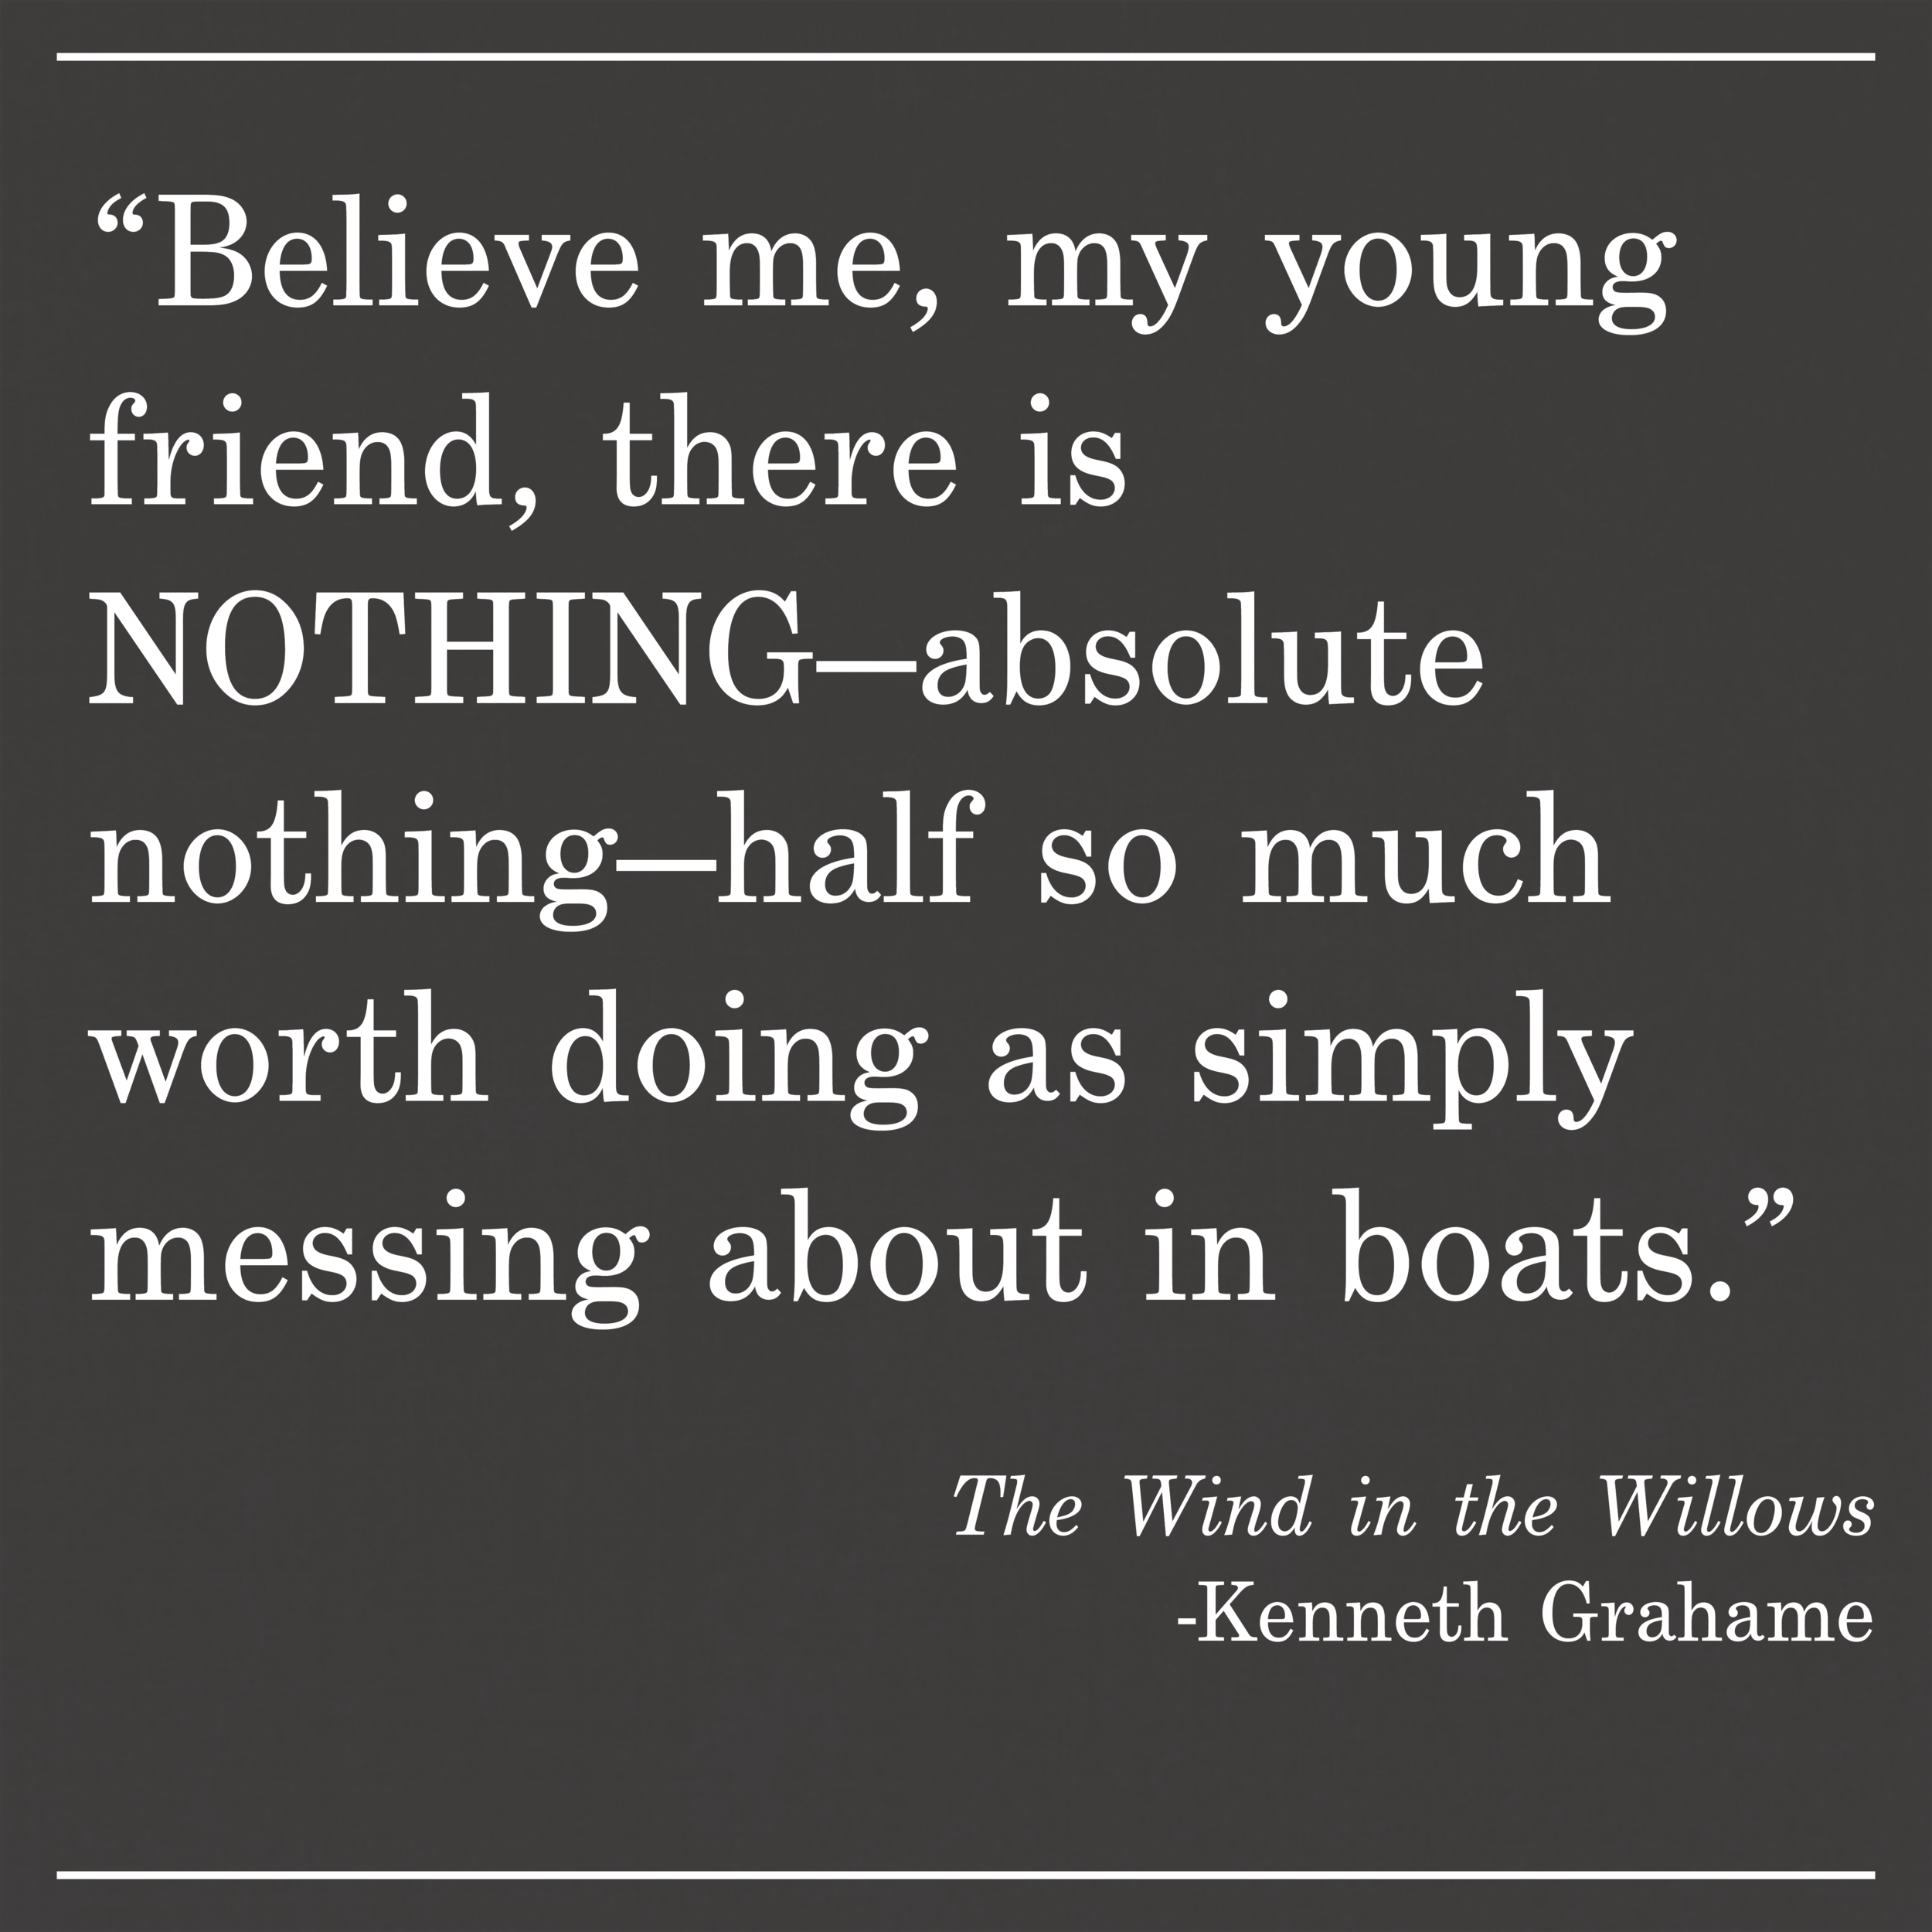 Daily Quote The Wind in the Willows by Kenneth Grahame